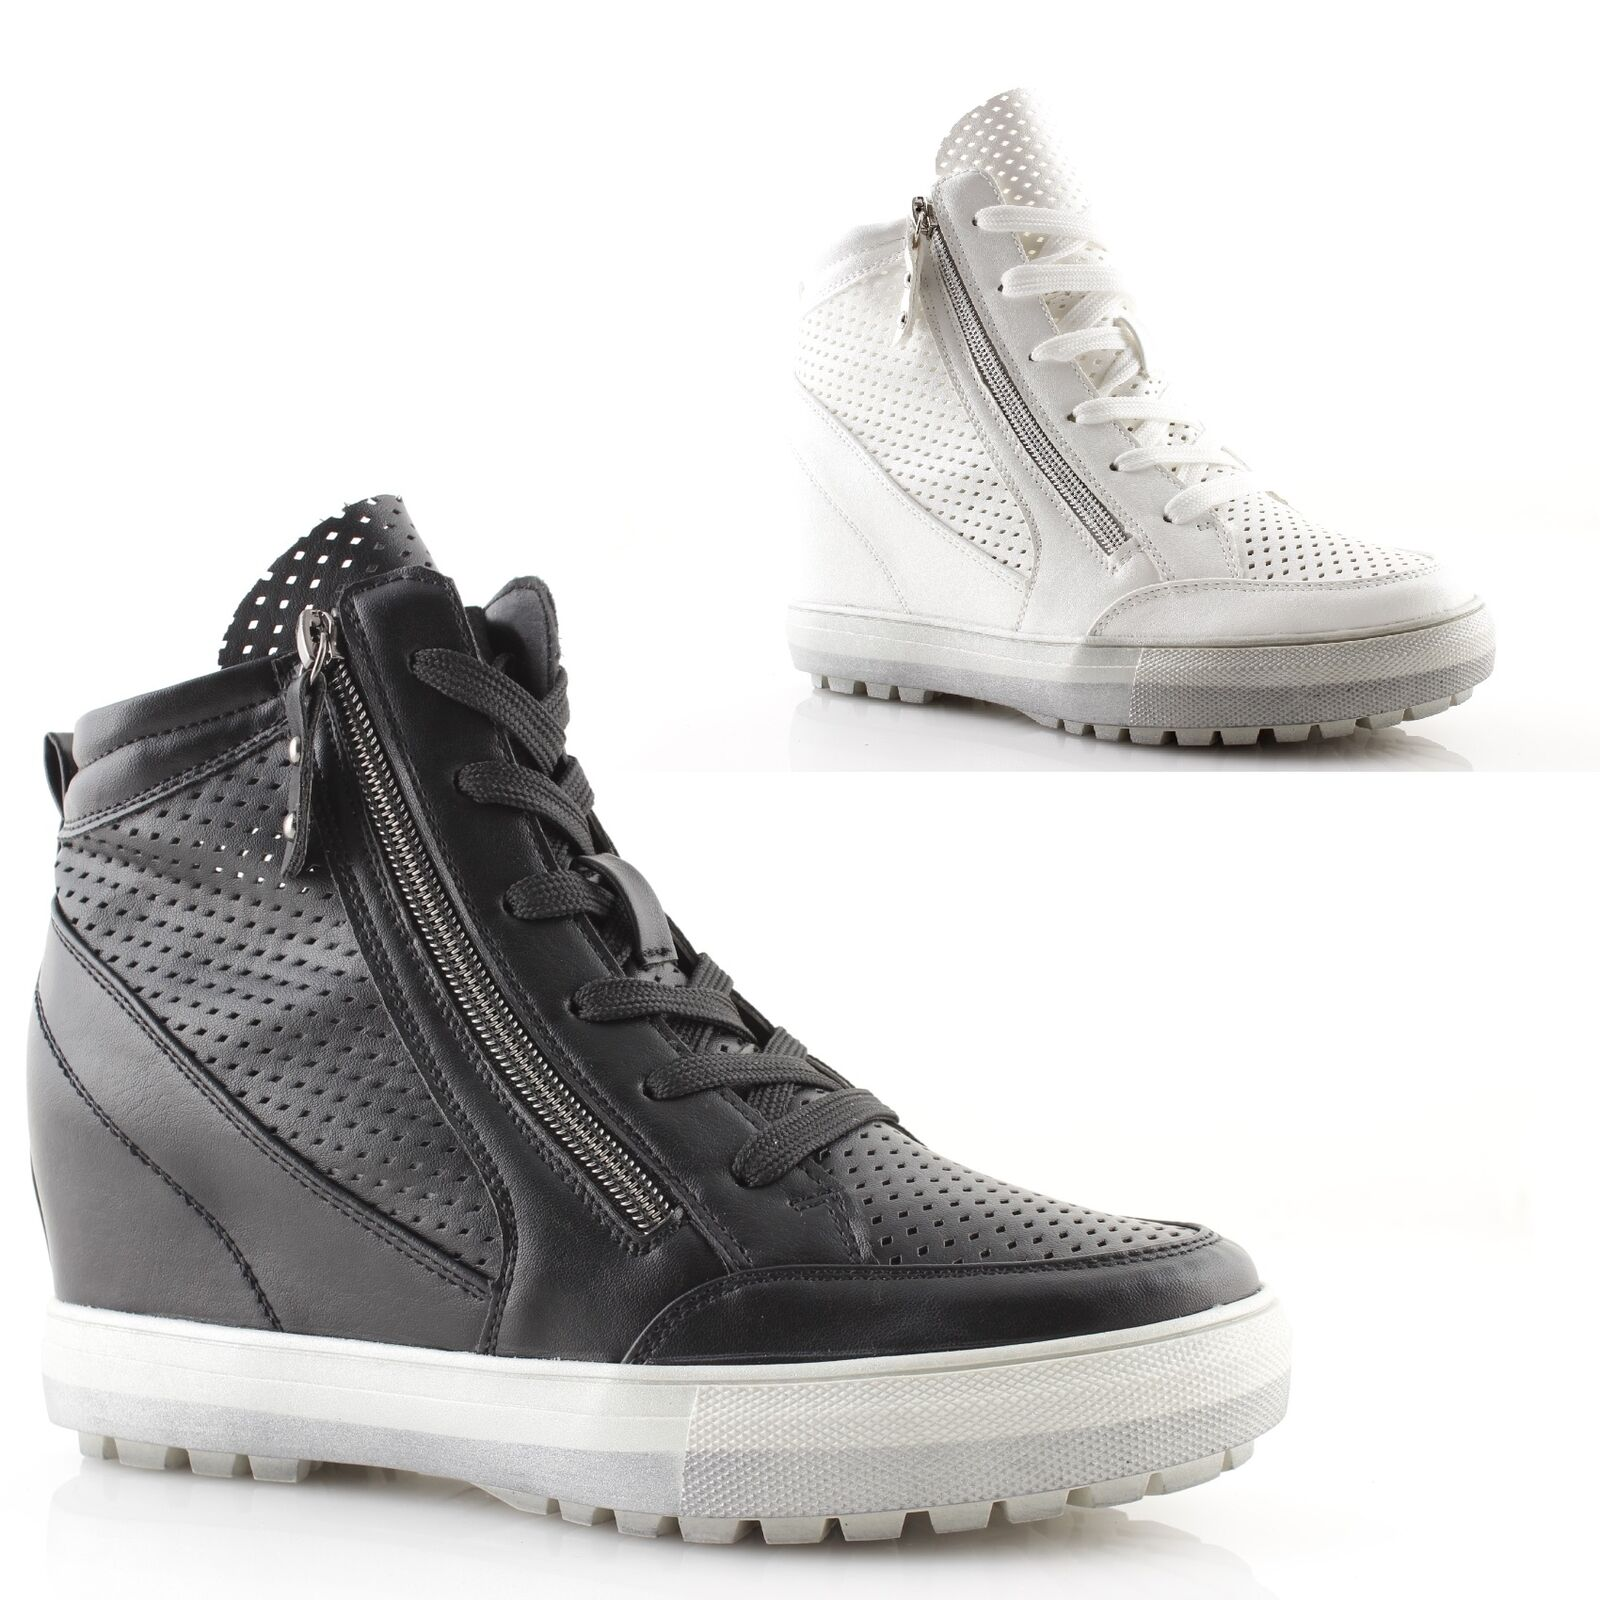 Woman Sneakers Wedges Internal High Black White Lace-Up shoes Kiss Kriss